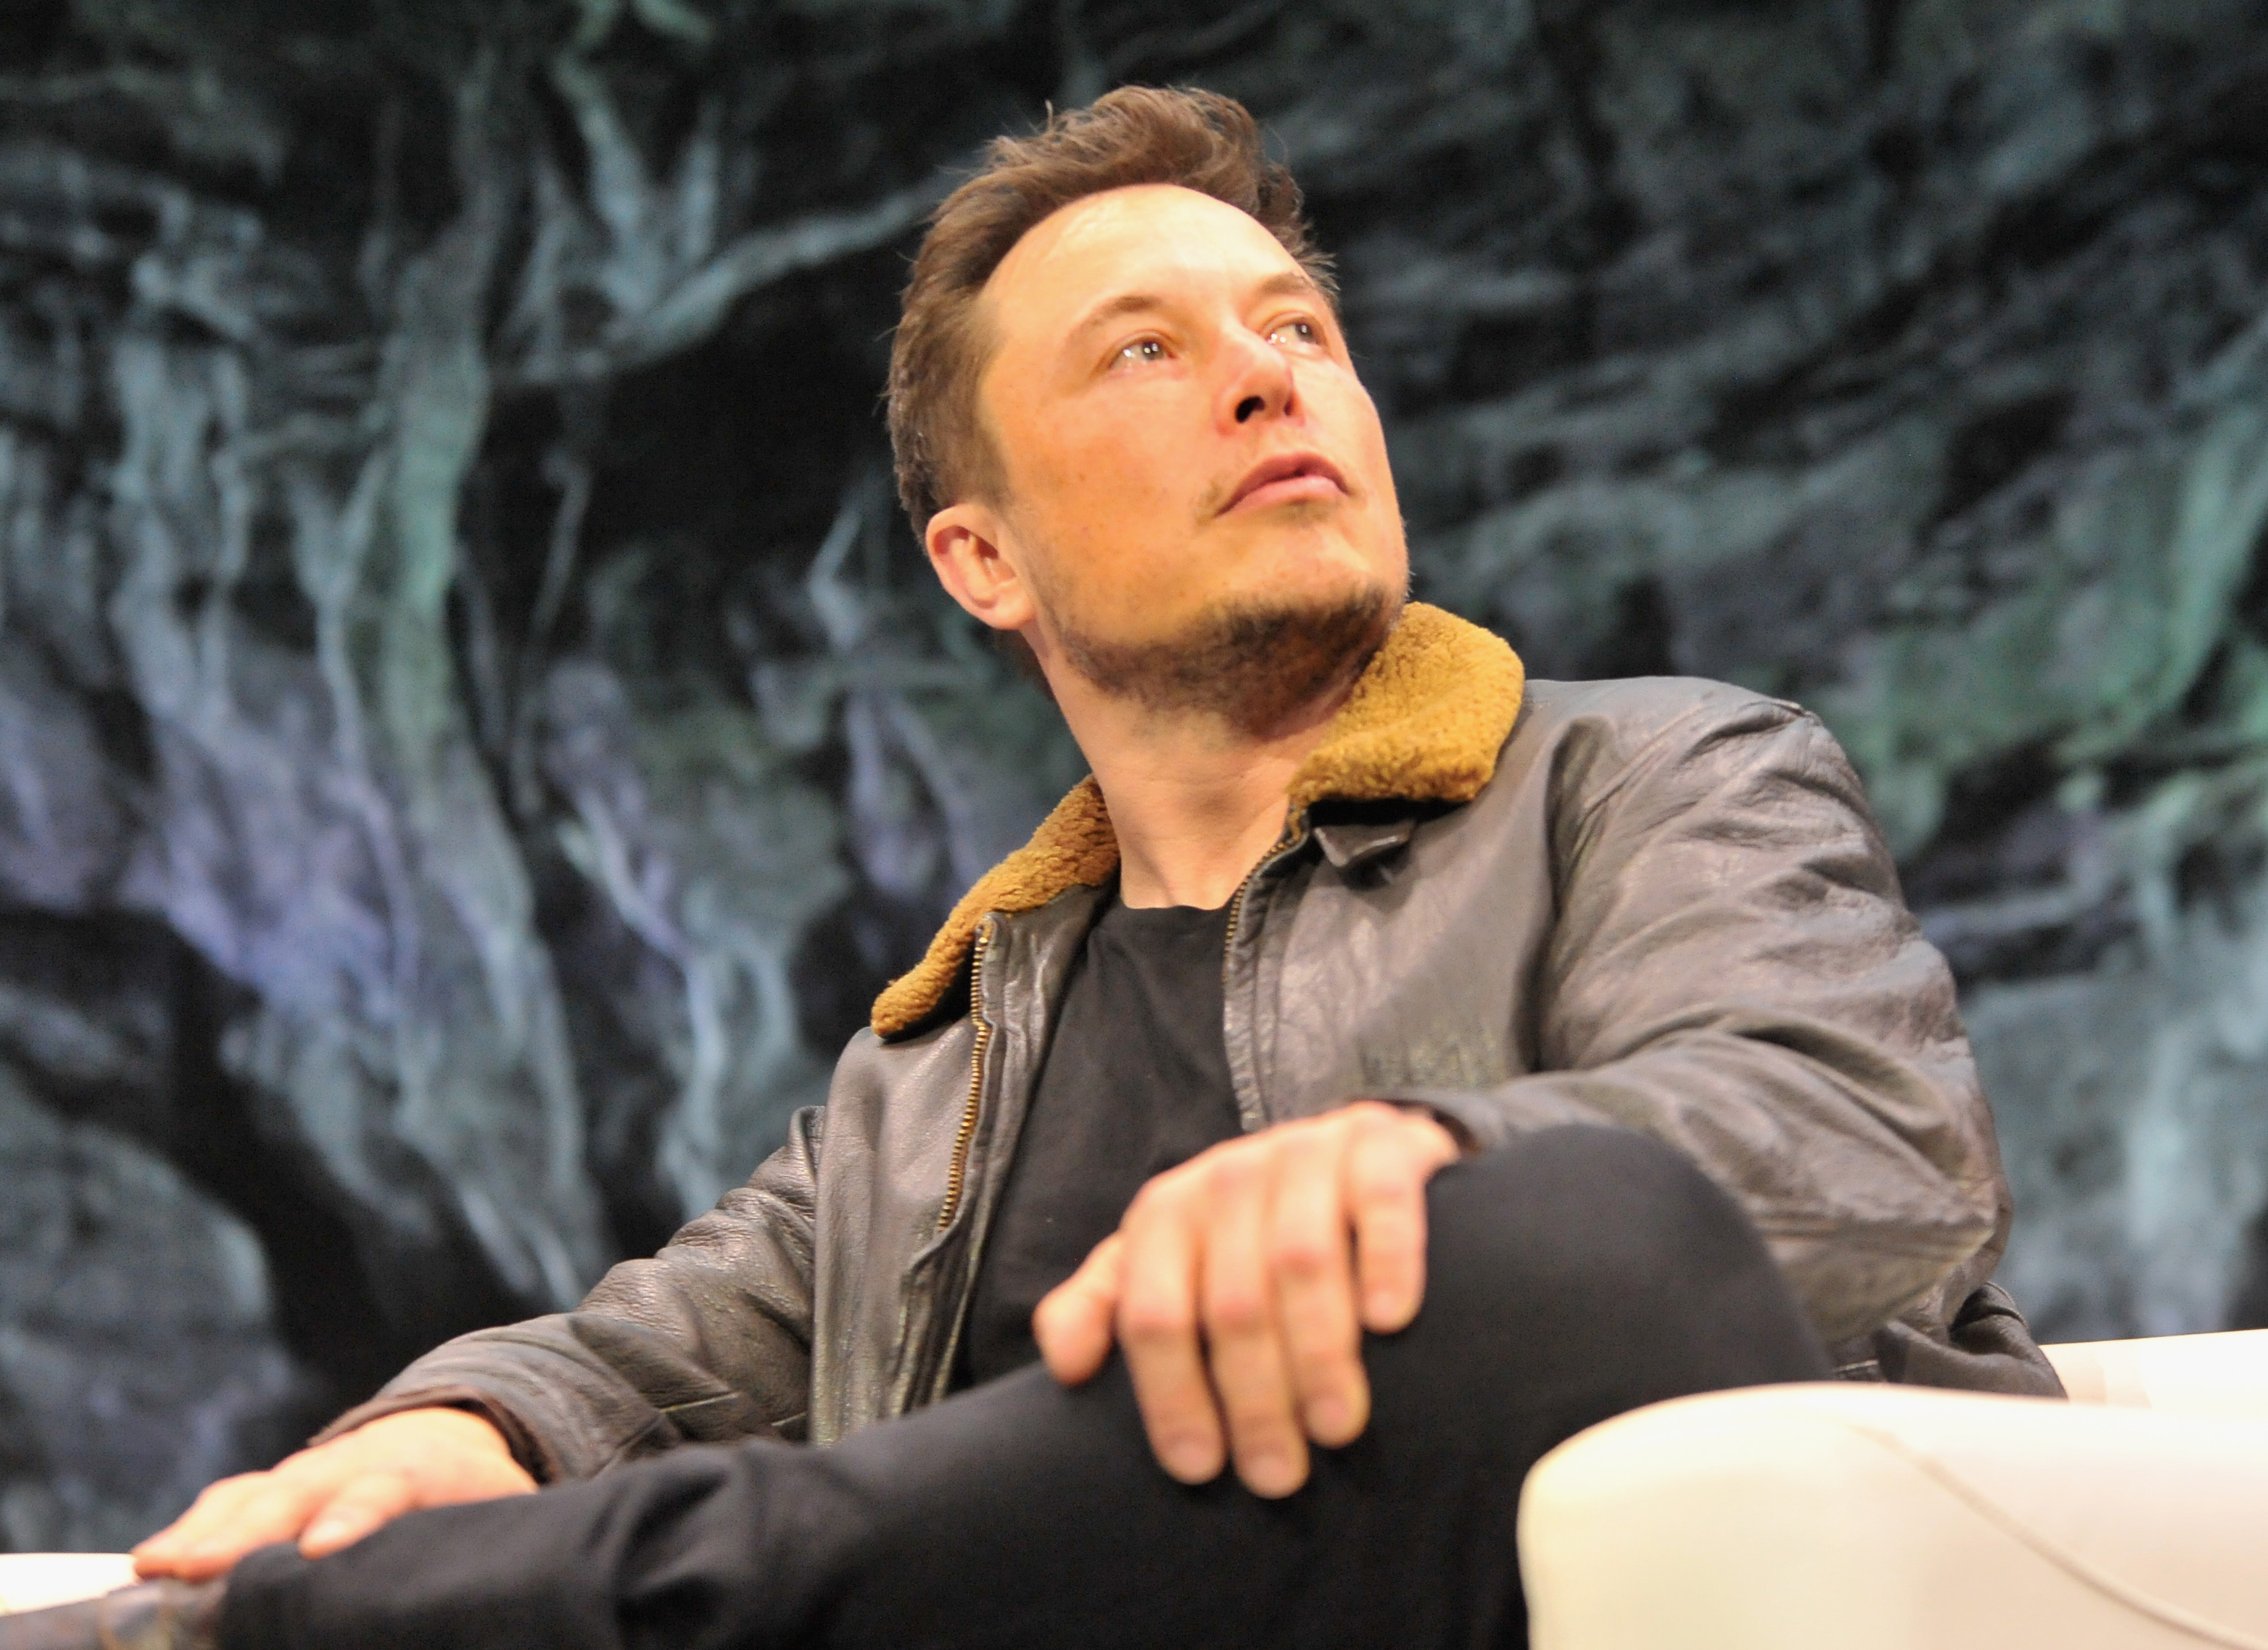 Elon Musk Is Building A Cyborg Dragon And Game Of Thrones Gave Him The Best Advice